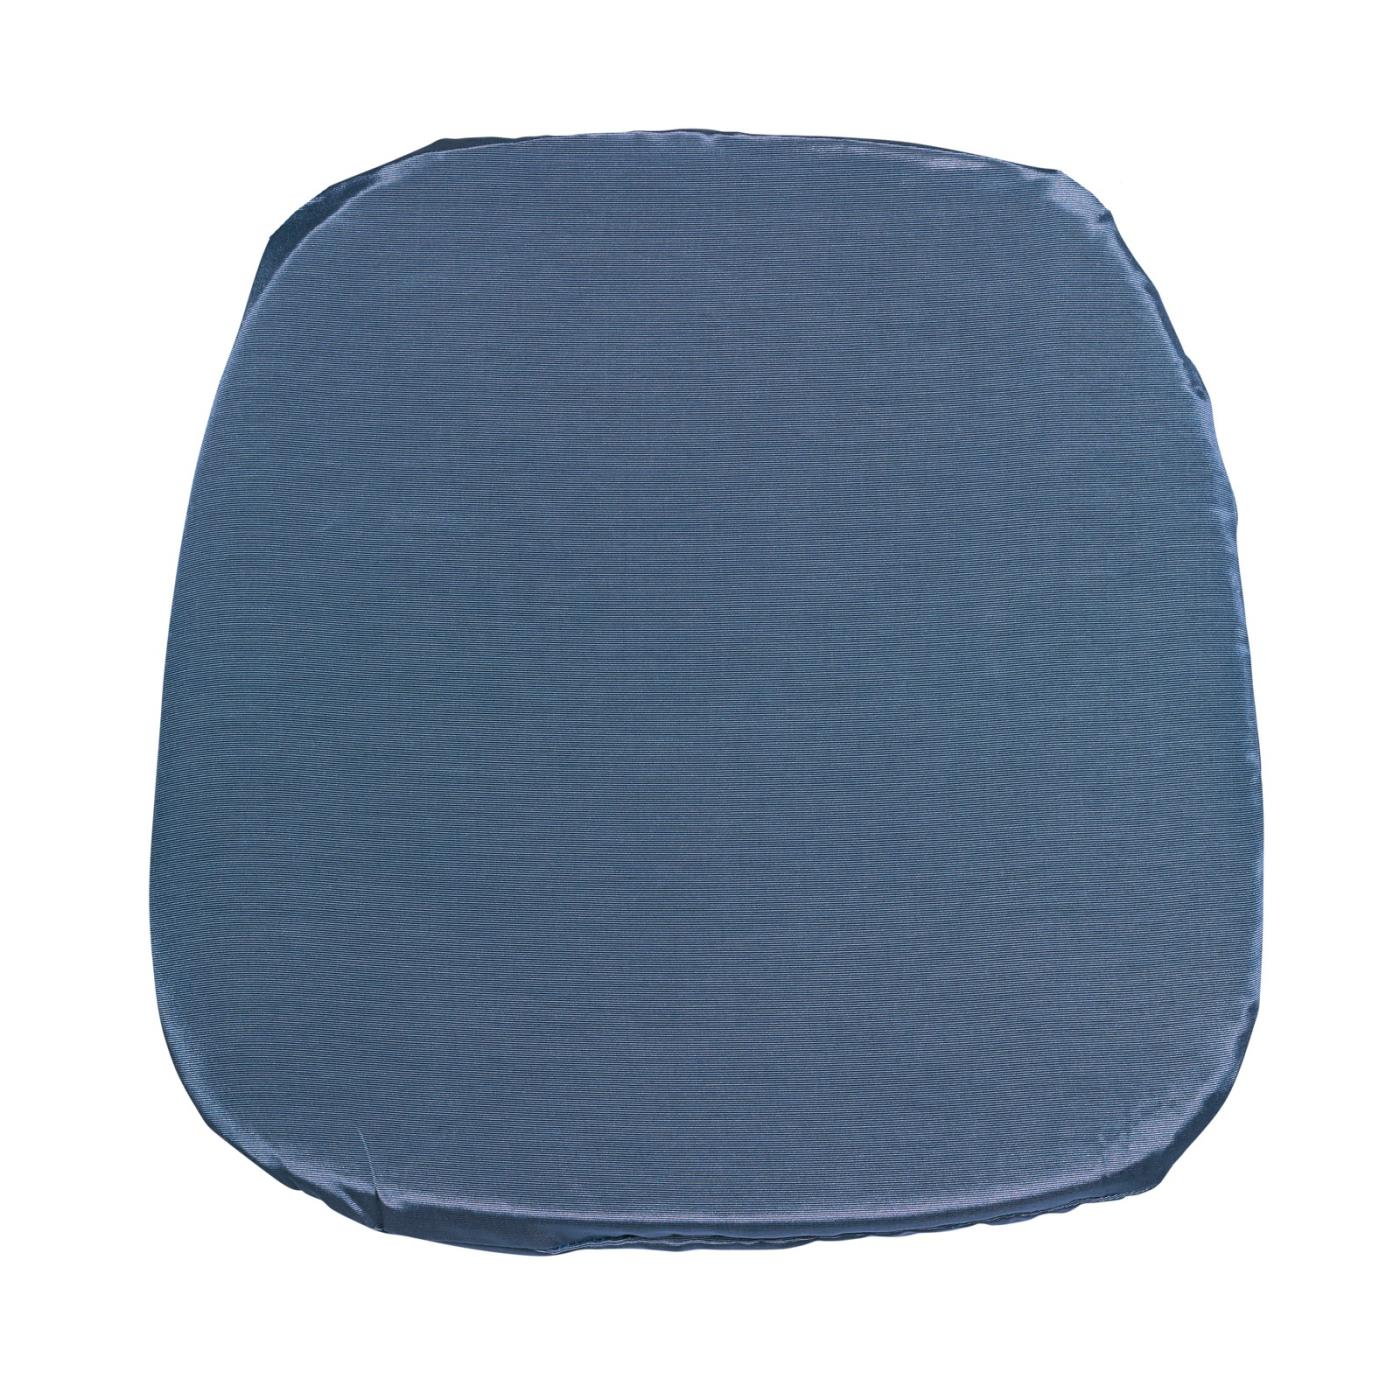 Bengaline Seat Cushion - Wedgewood Blue